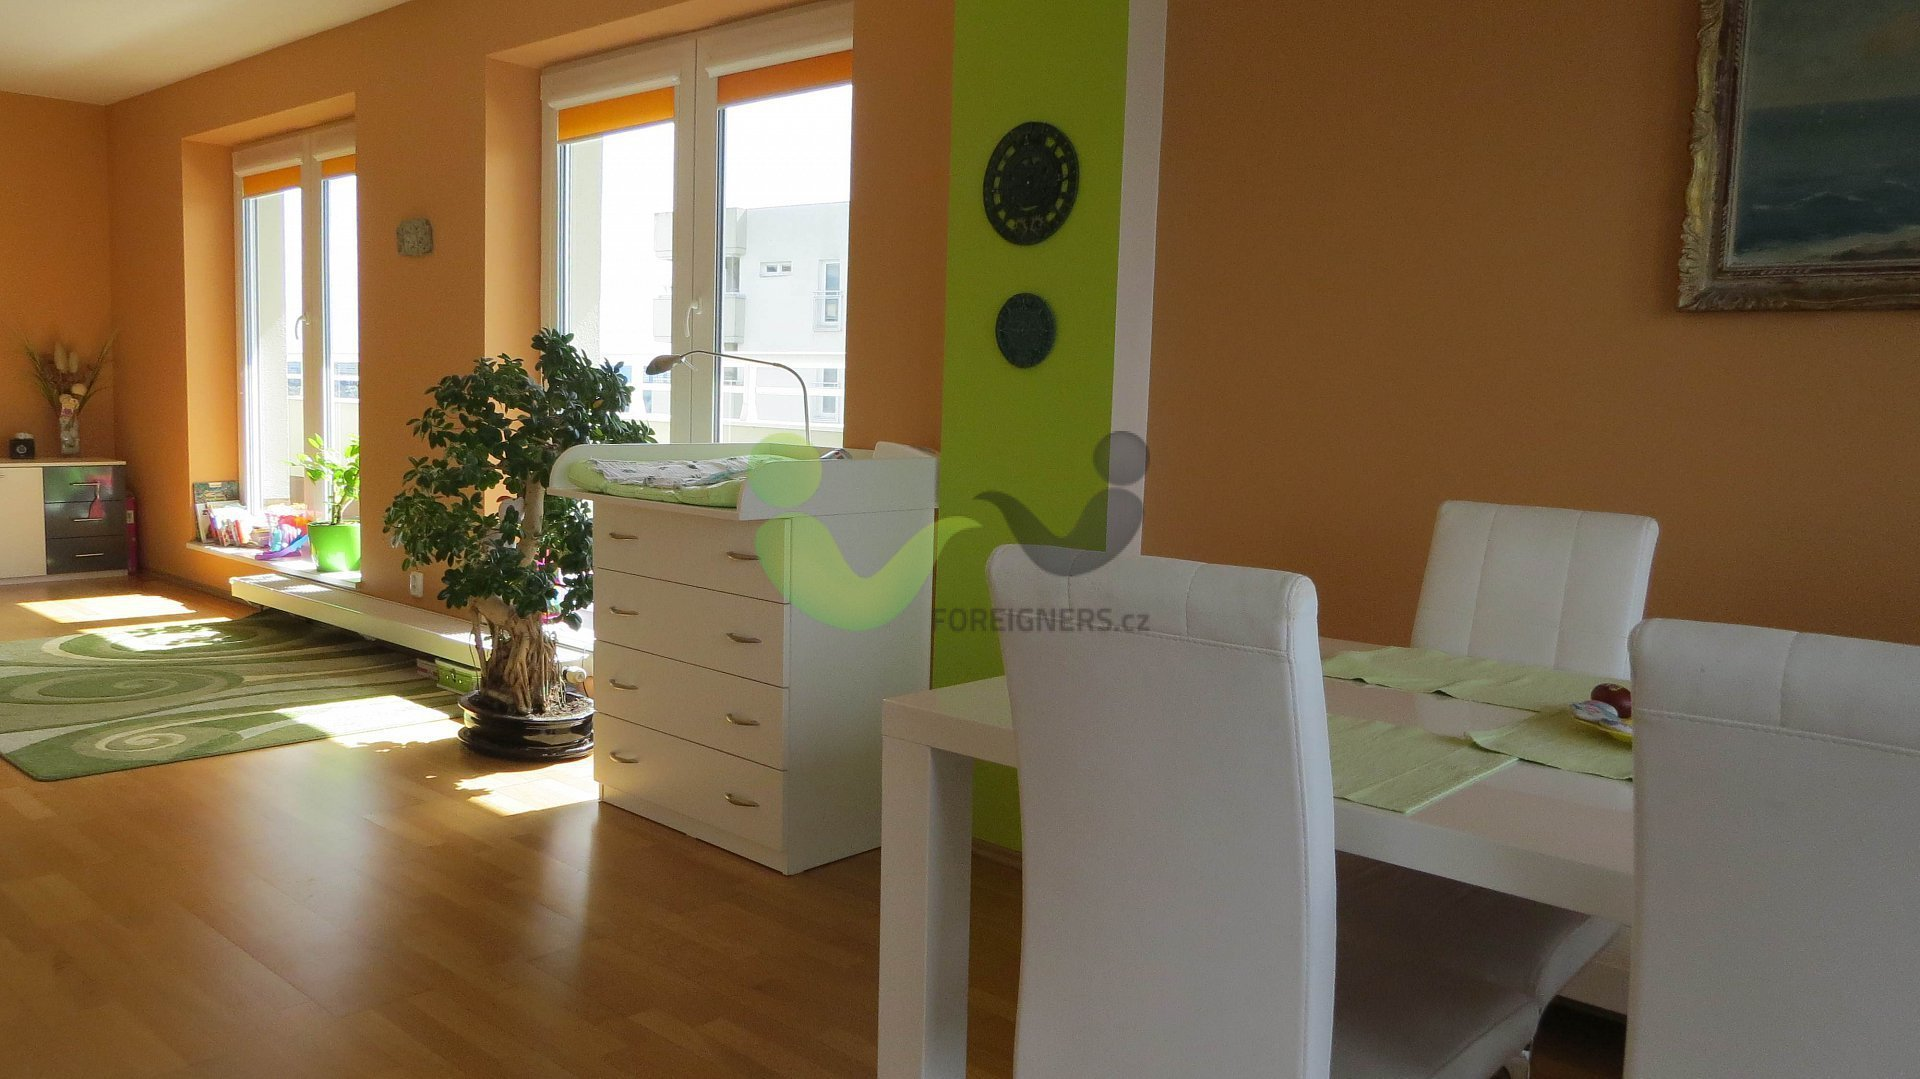 Best 2 Bedroom 3 Kk Apartment For Rent In Prague Záběhlice With Pictures